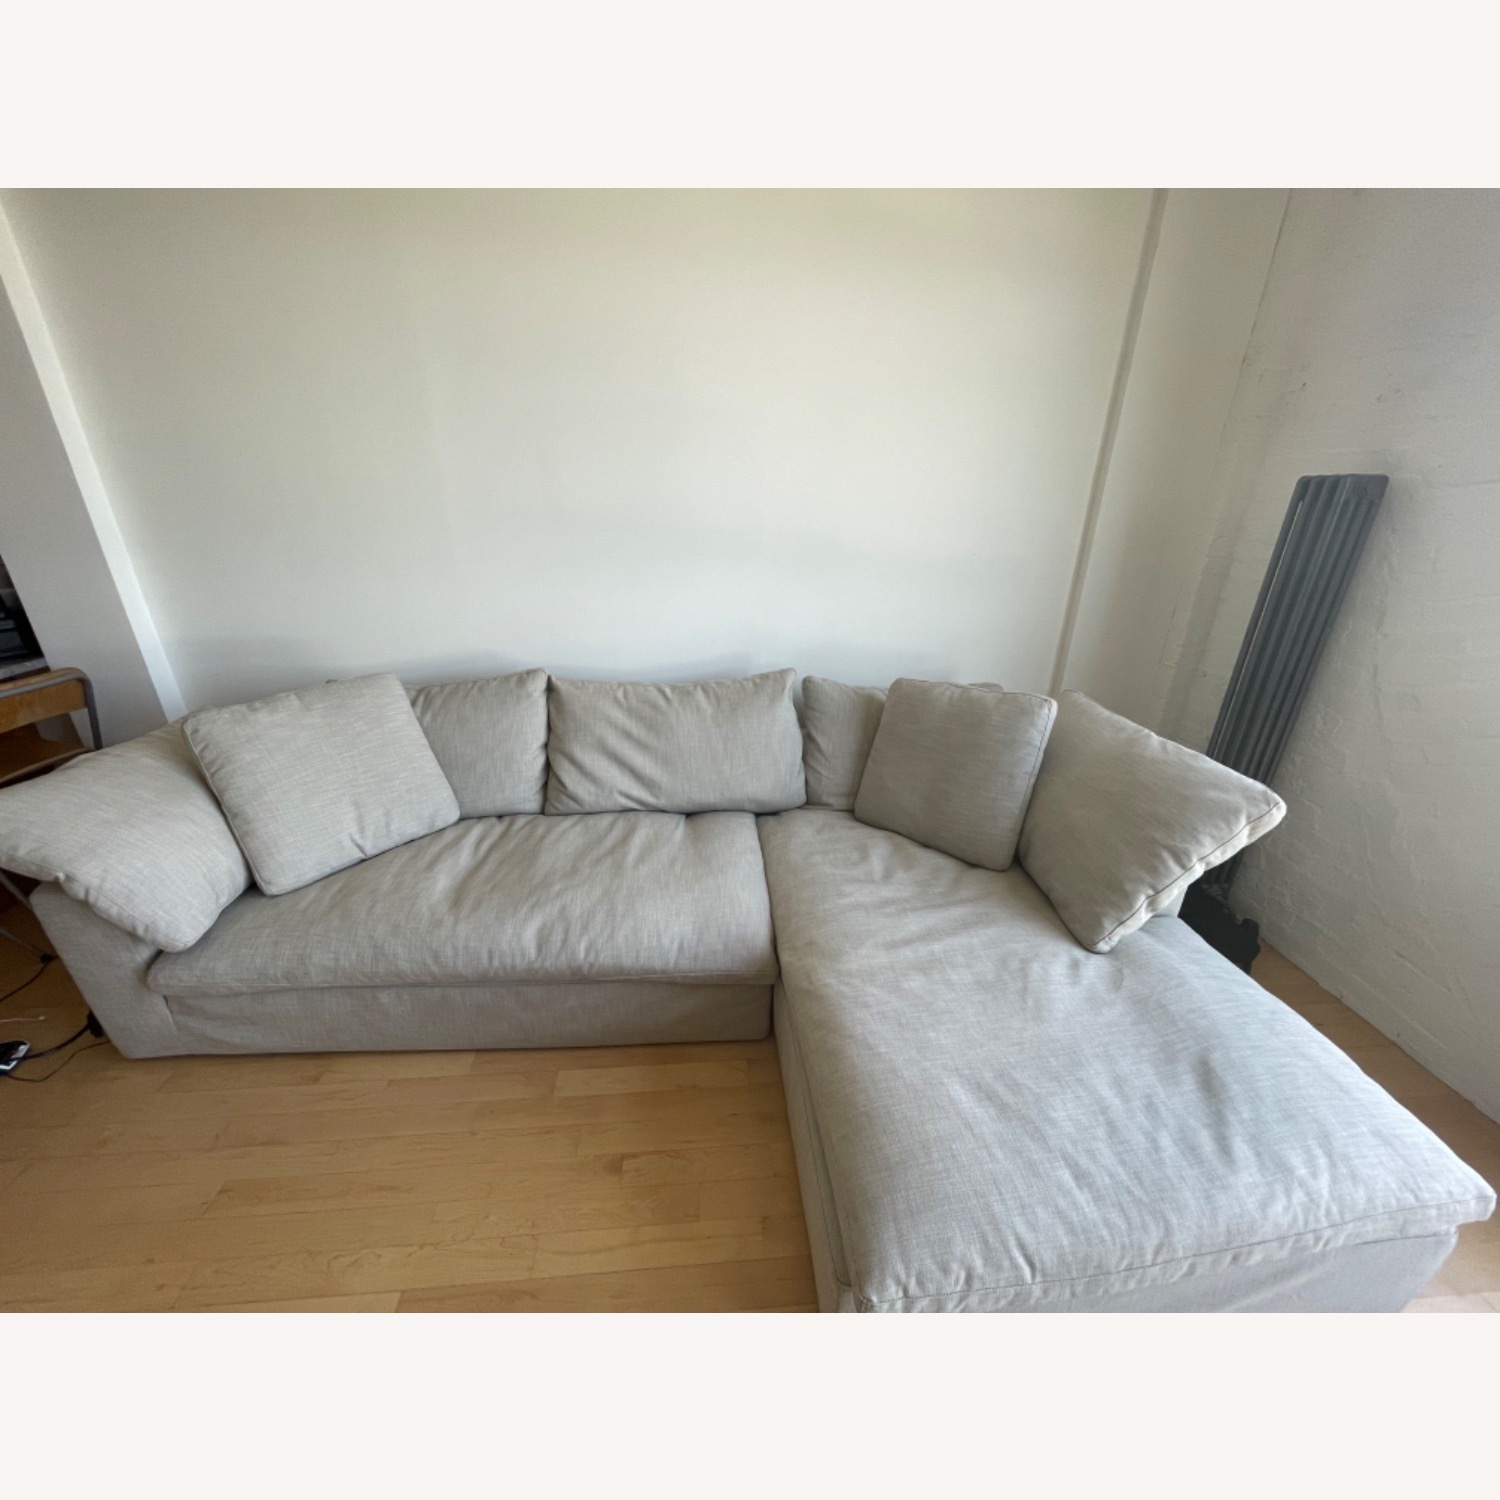 Restoration Hardware Cloud Couch - image-1